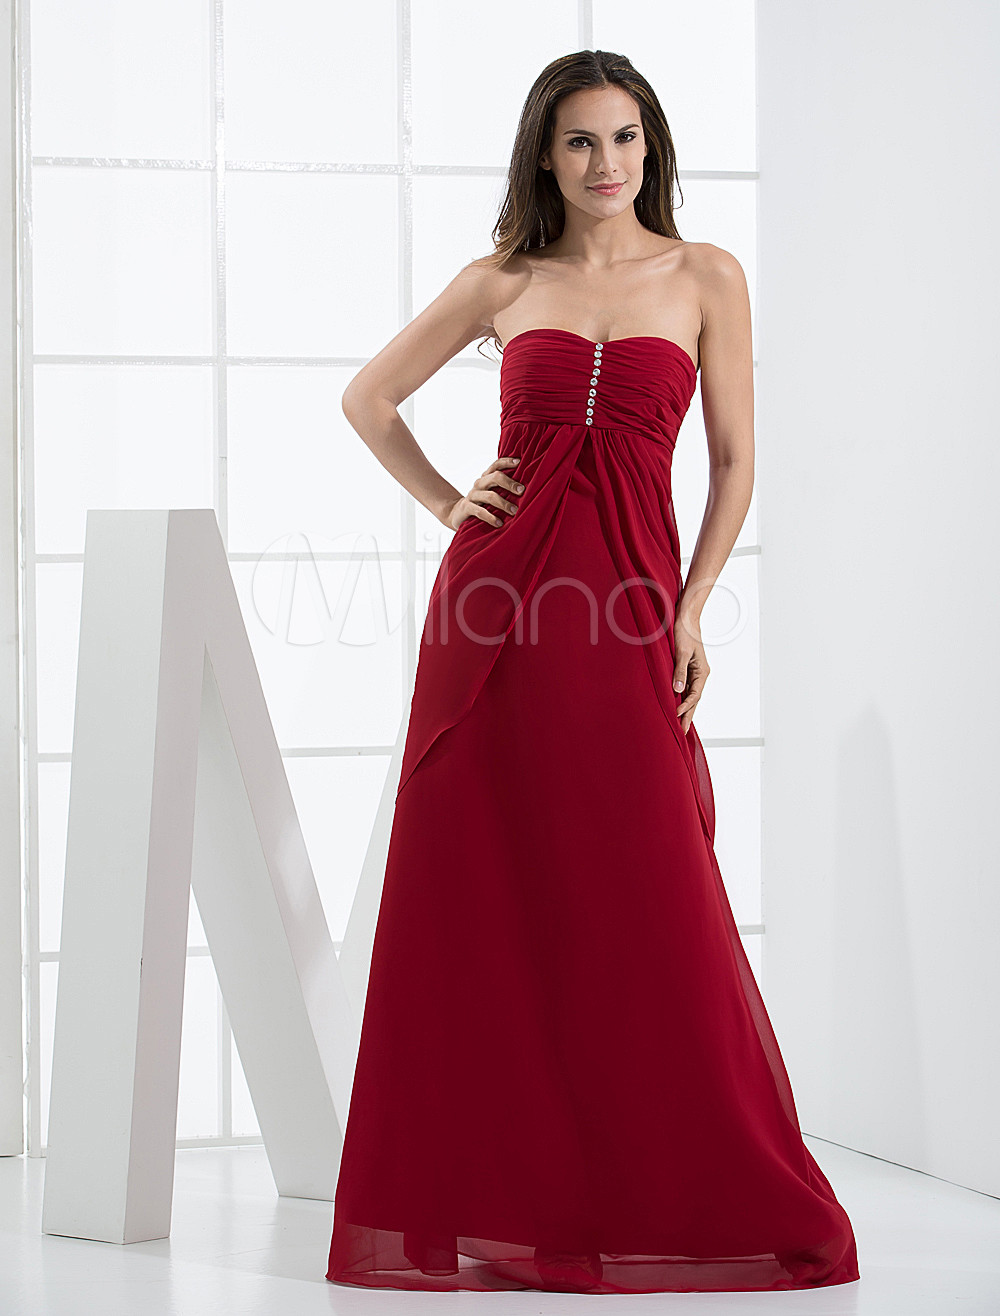 Burgundy Beaded Empire Waist Chiffon Satin Bridesmaid Maxi Dress